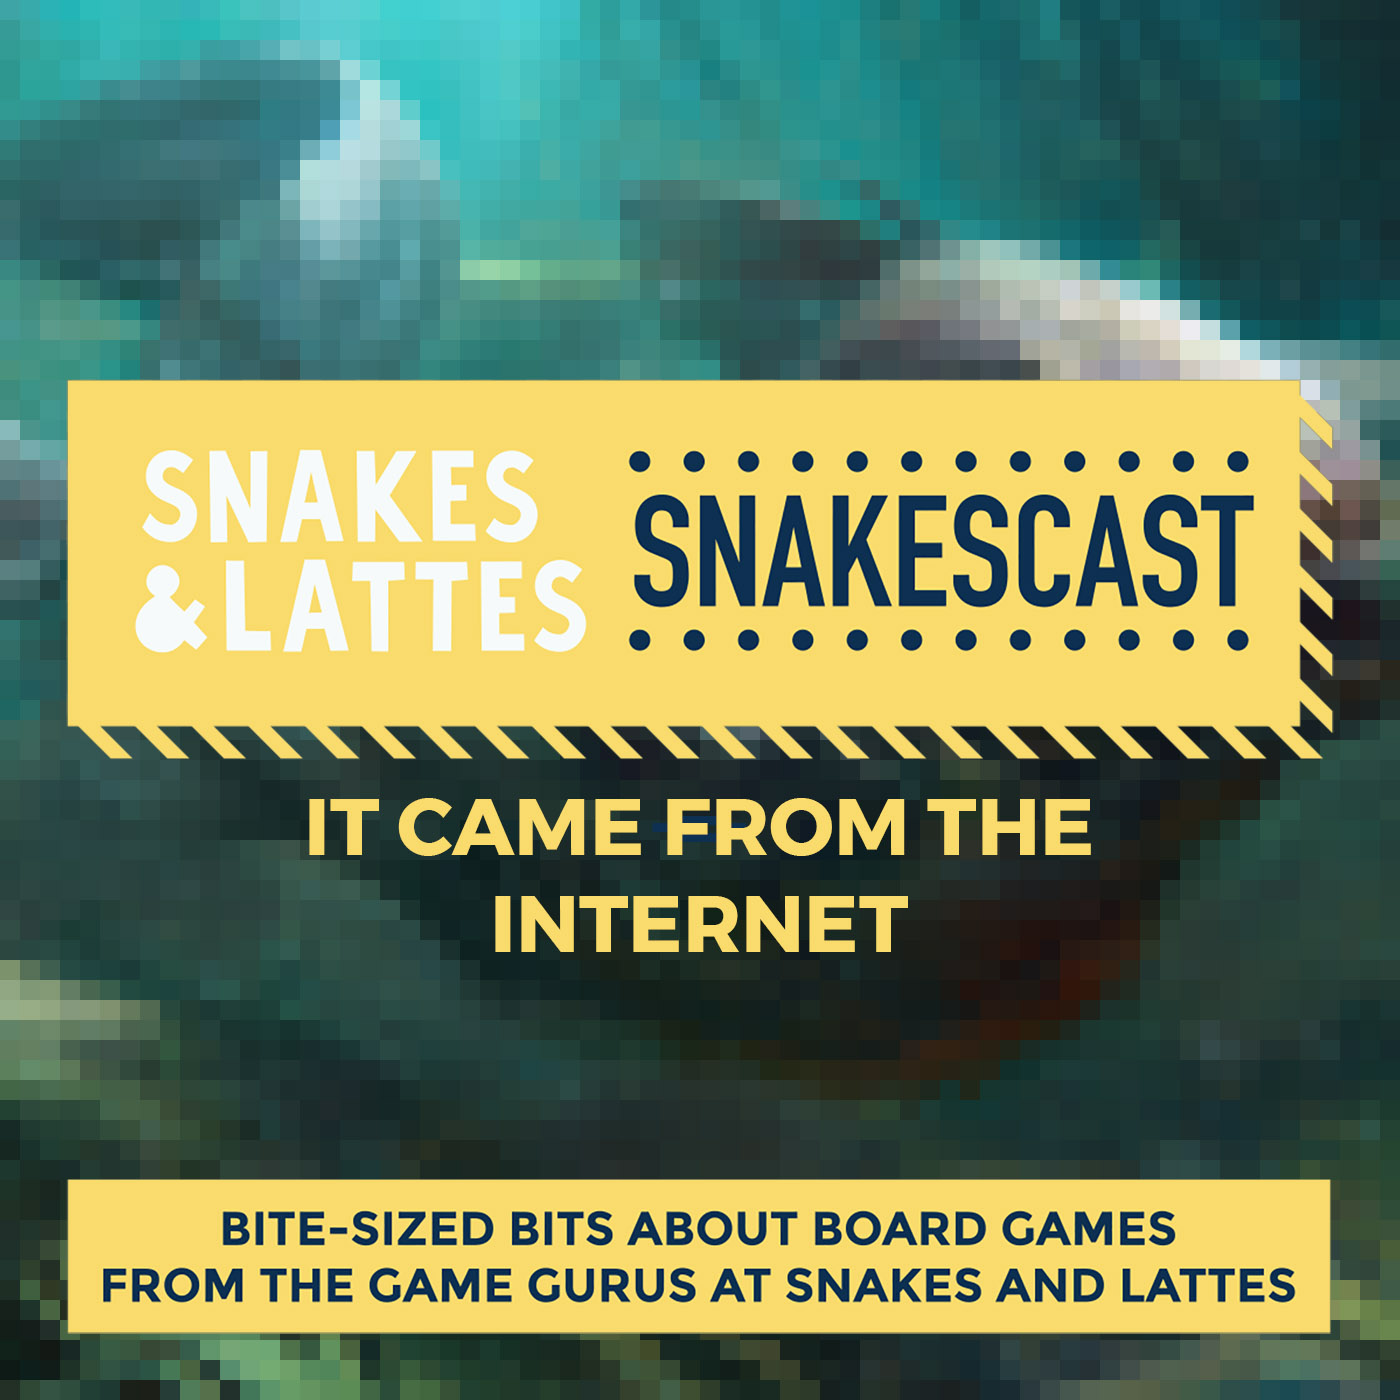 It Came From the Internet, Part 1 - Games about internet culture